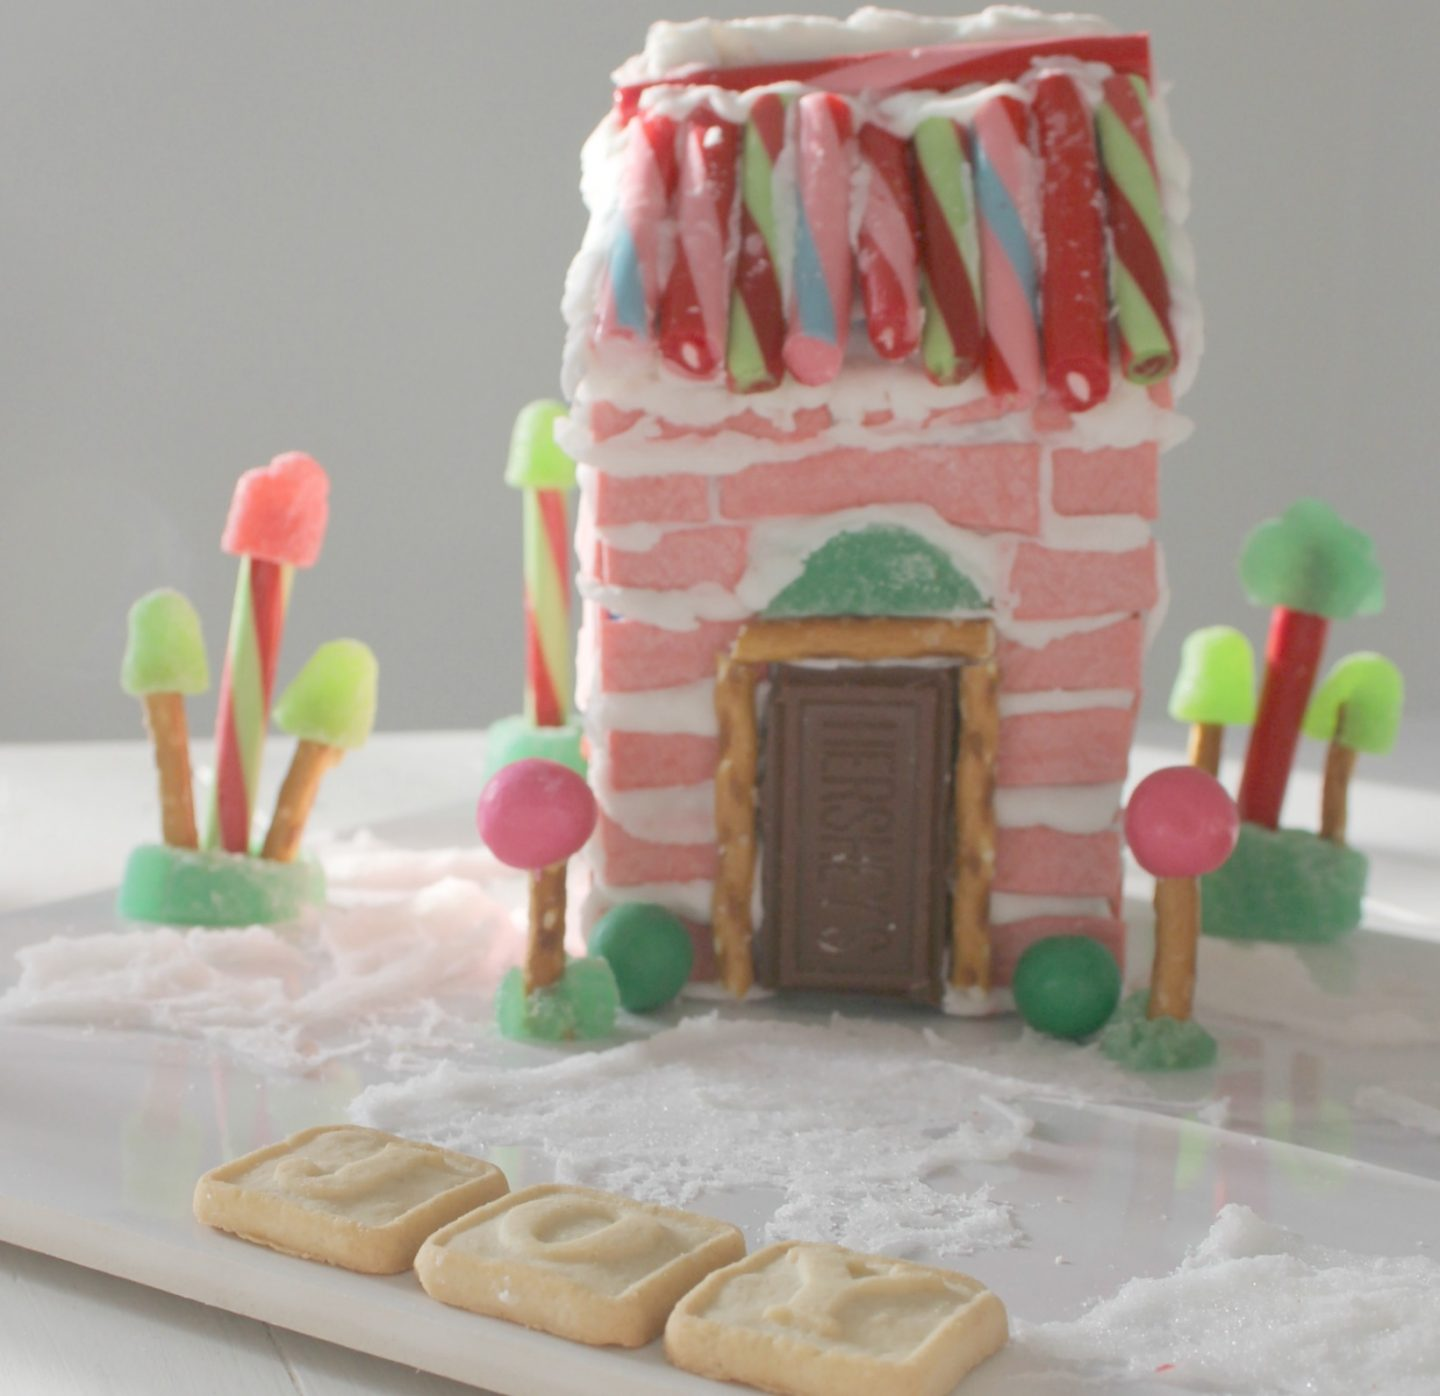 Whimsical and festive homemade pink candy house made with sticks of gum - Hello Lovely Studio. CLICK OVER to find Christmas Decor DIY Ideas to Get Crafting for the Holidays Right Now as well as Decorating ideas! #christmasdecor #pinkchristmas